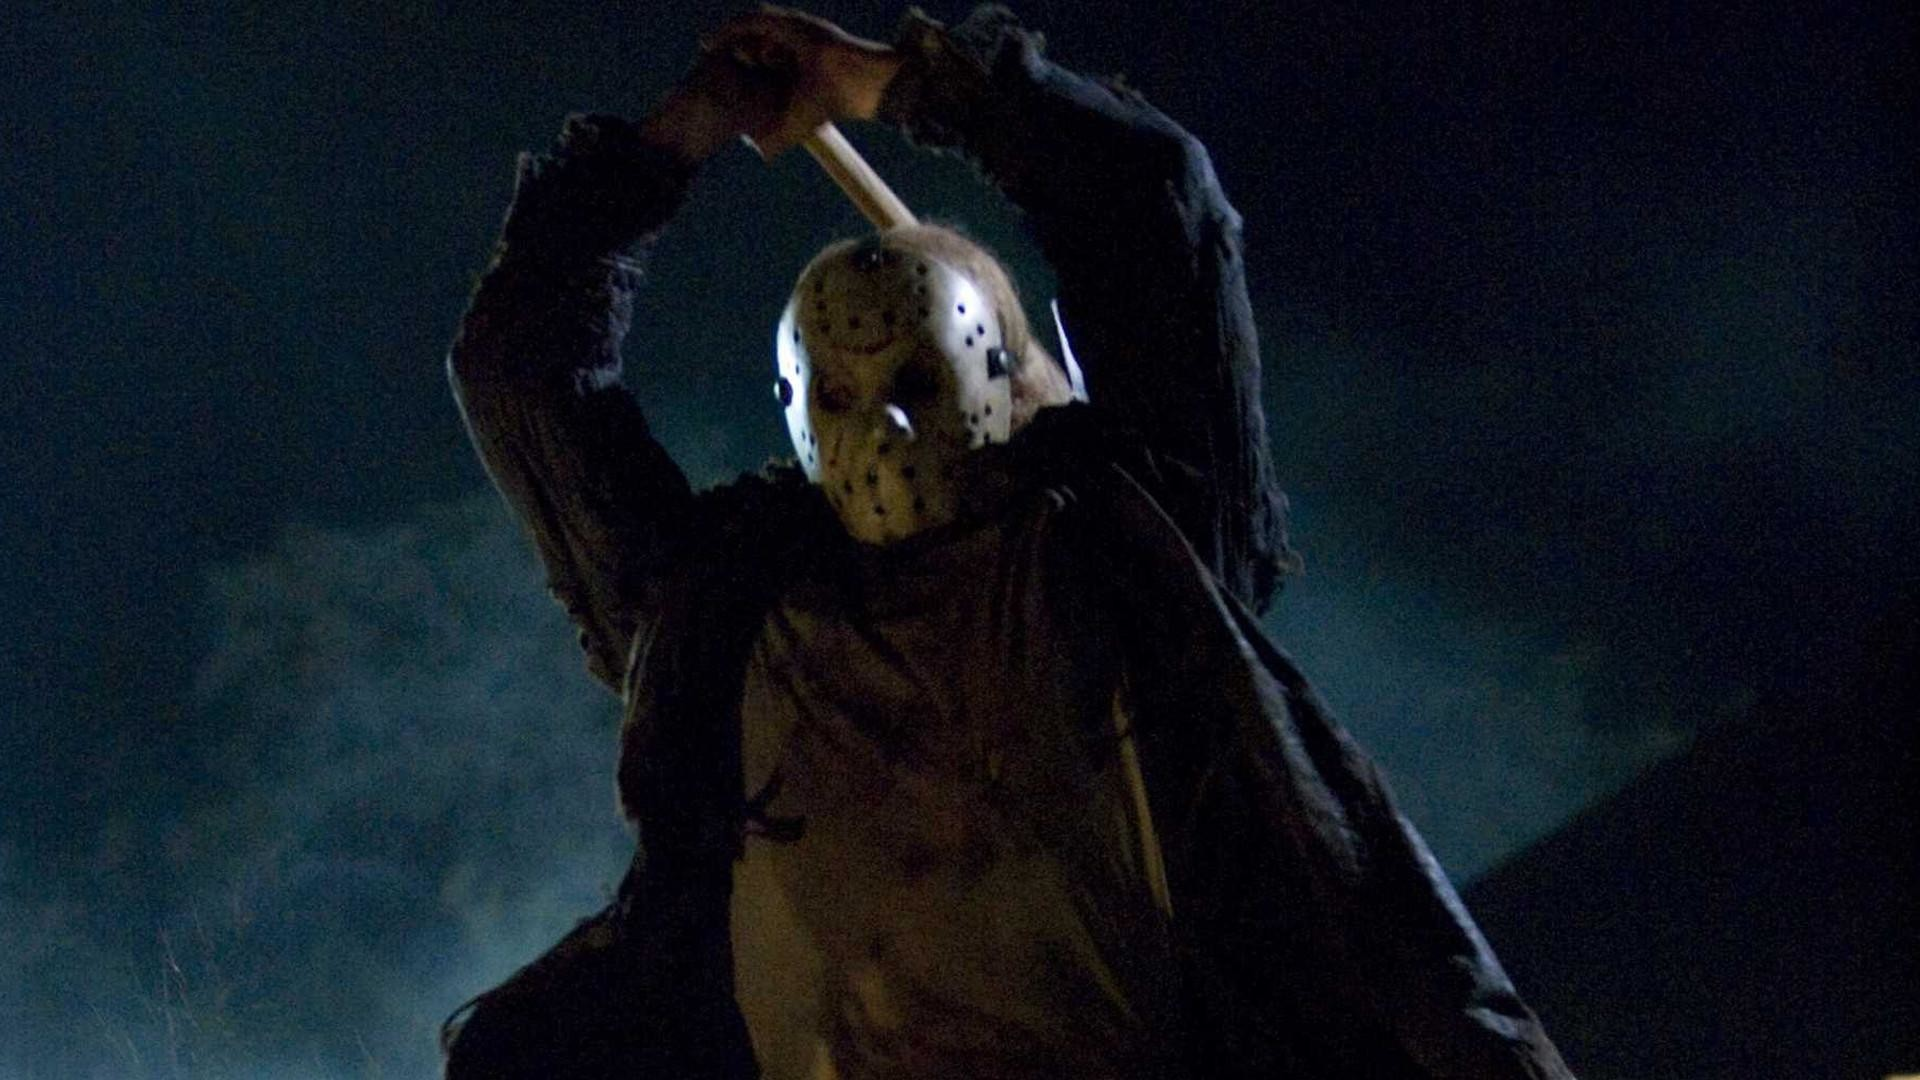 DOUBLE TAKE – FRIDAY THE 13TH (1980) / FRIDAY THE 13TH (2009 .